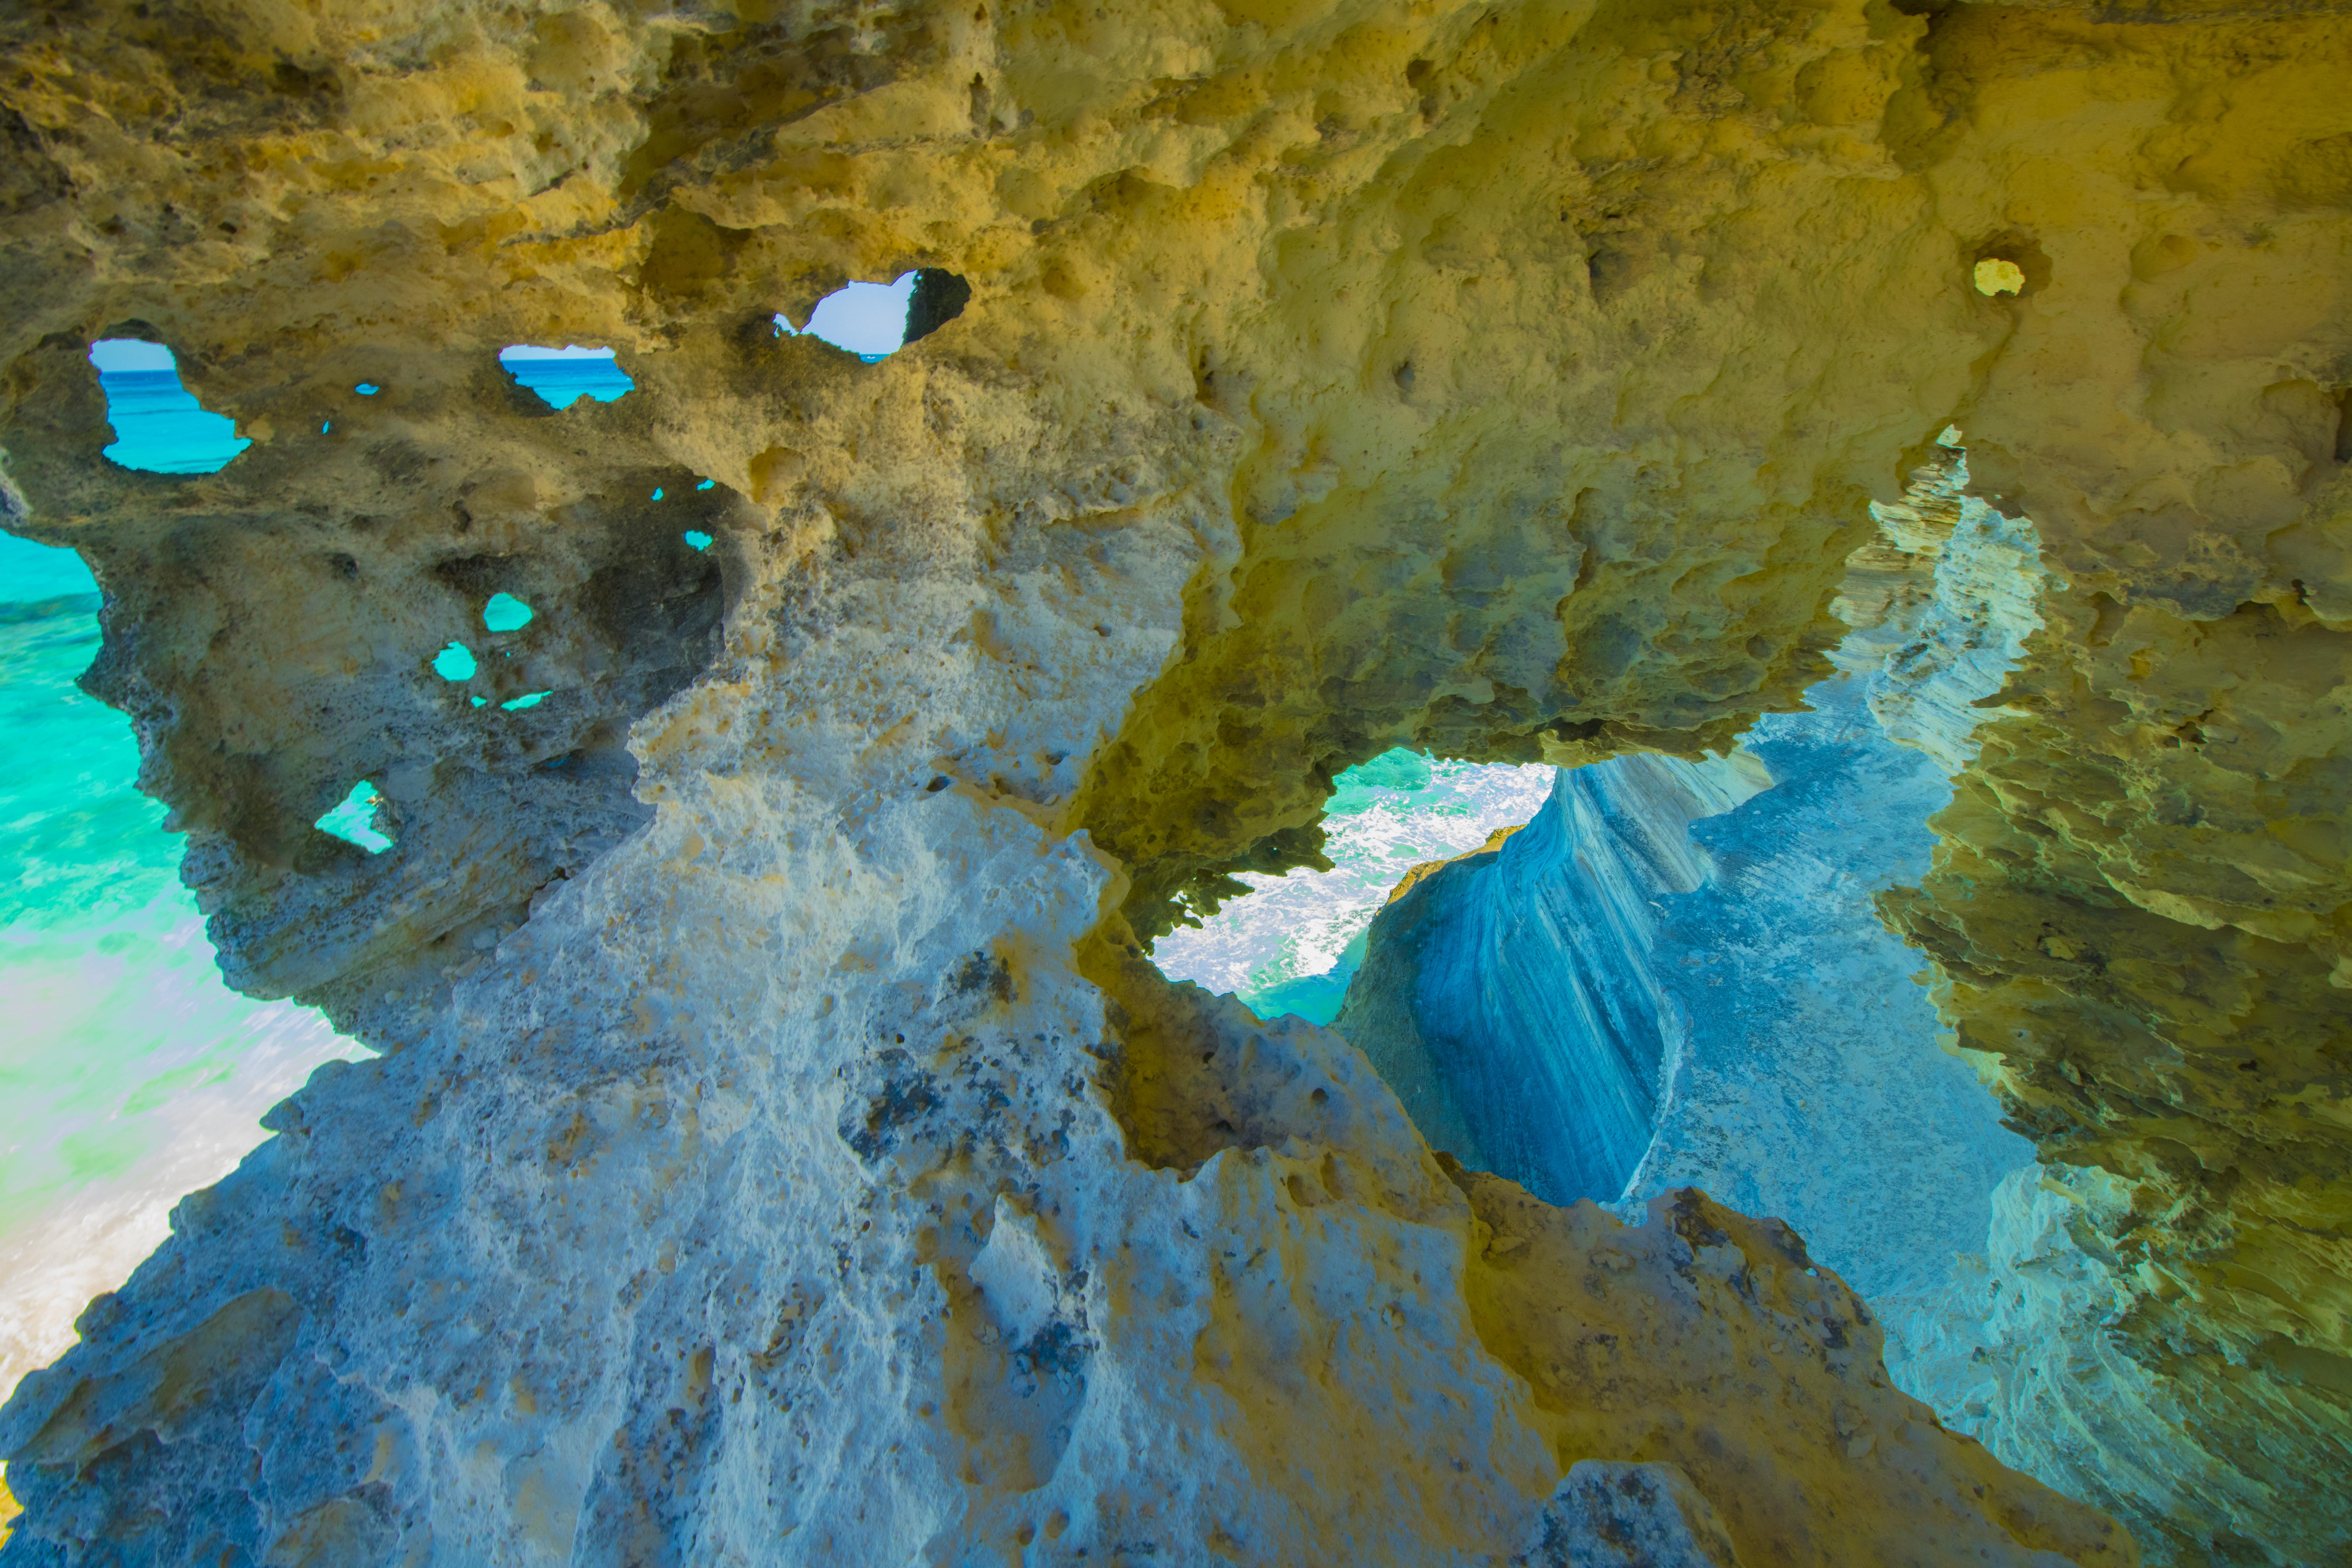 Sea cave erosion on Cat Island, The Bahamas photographed by Tom Till